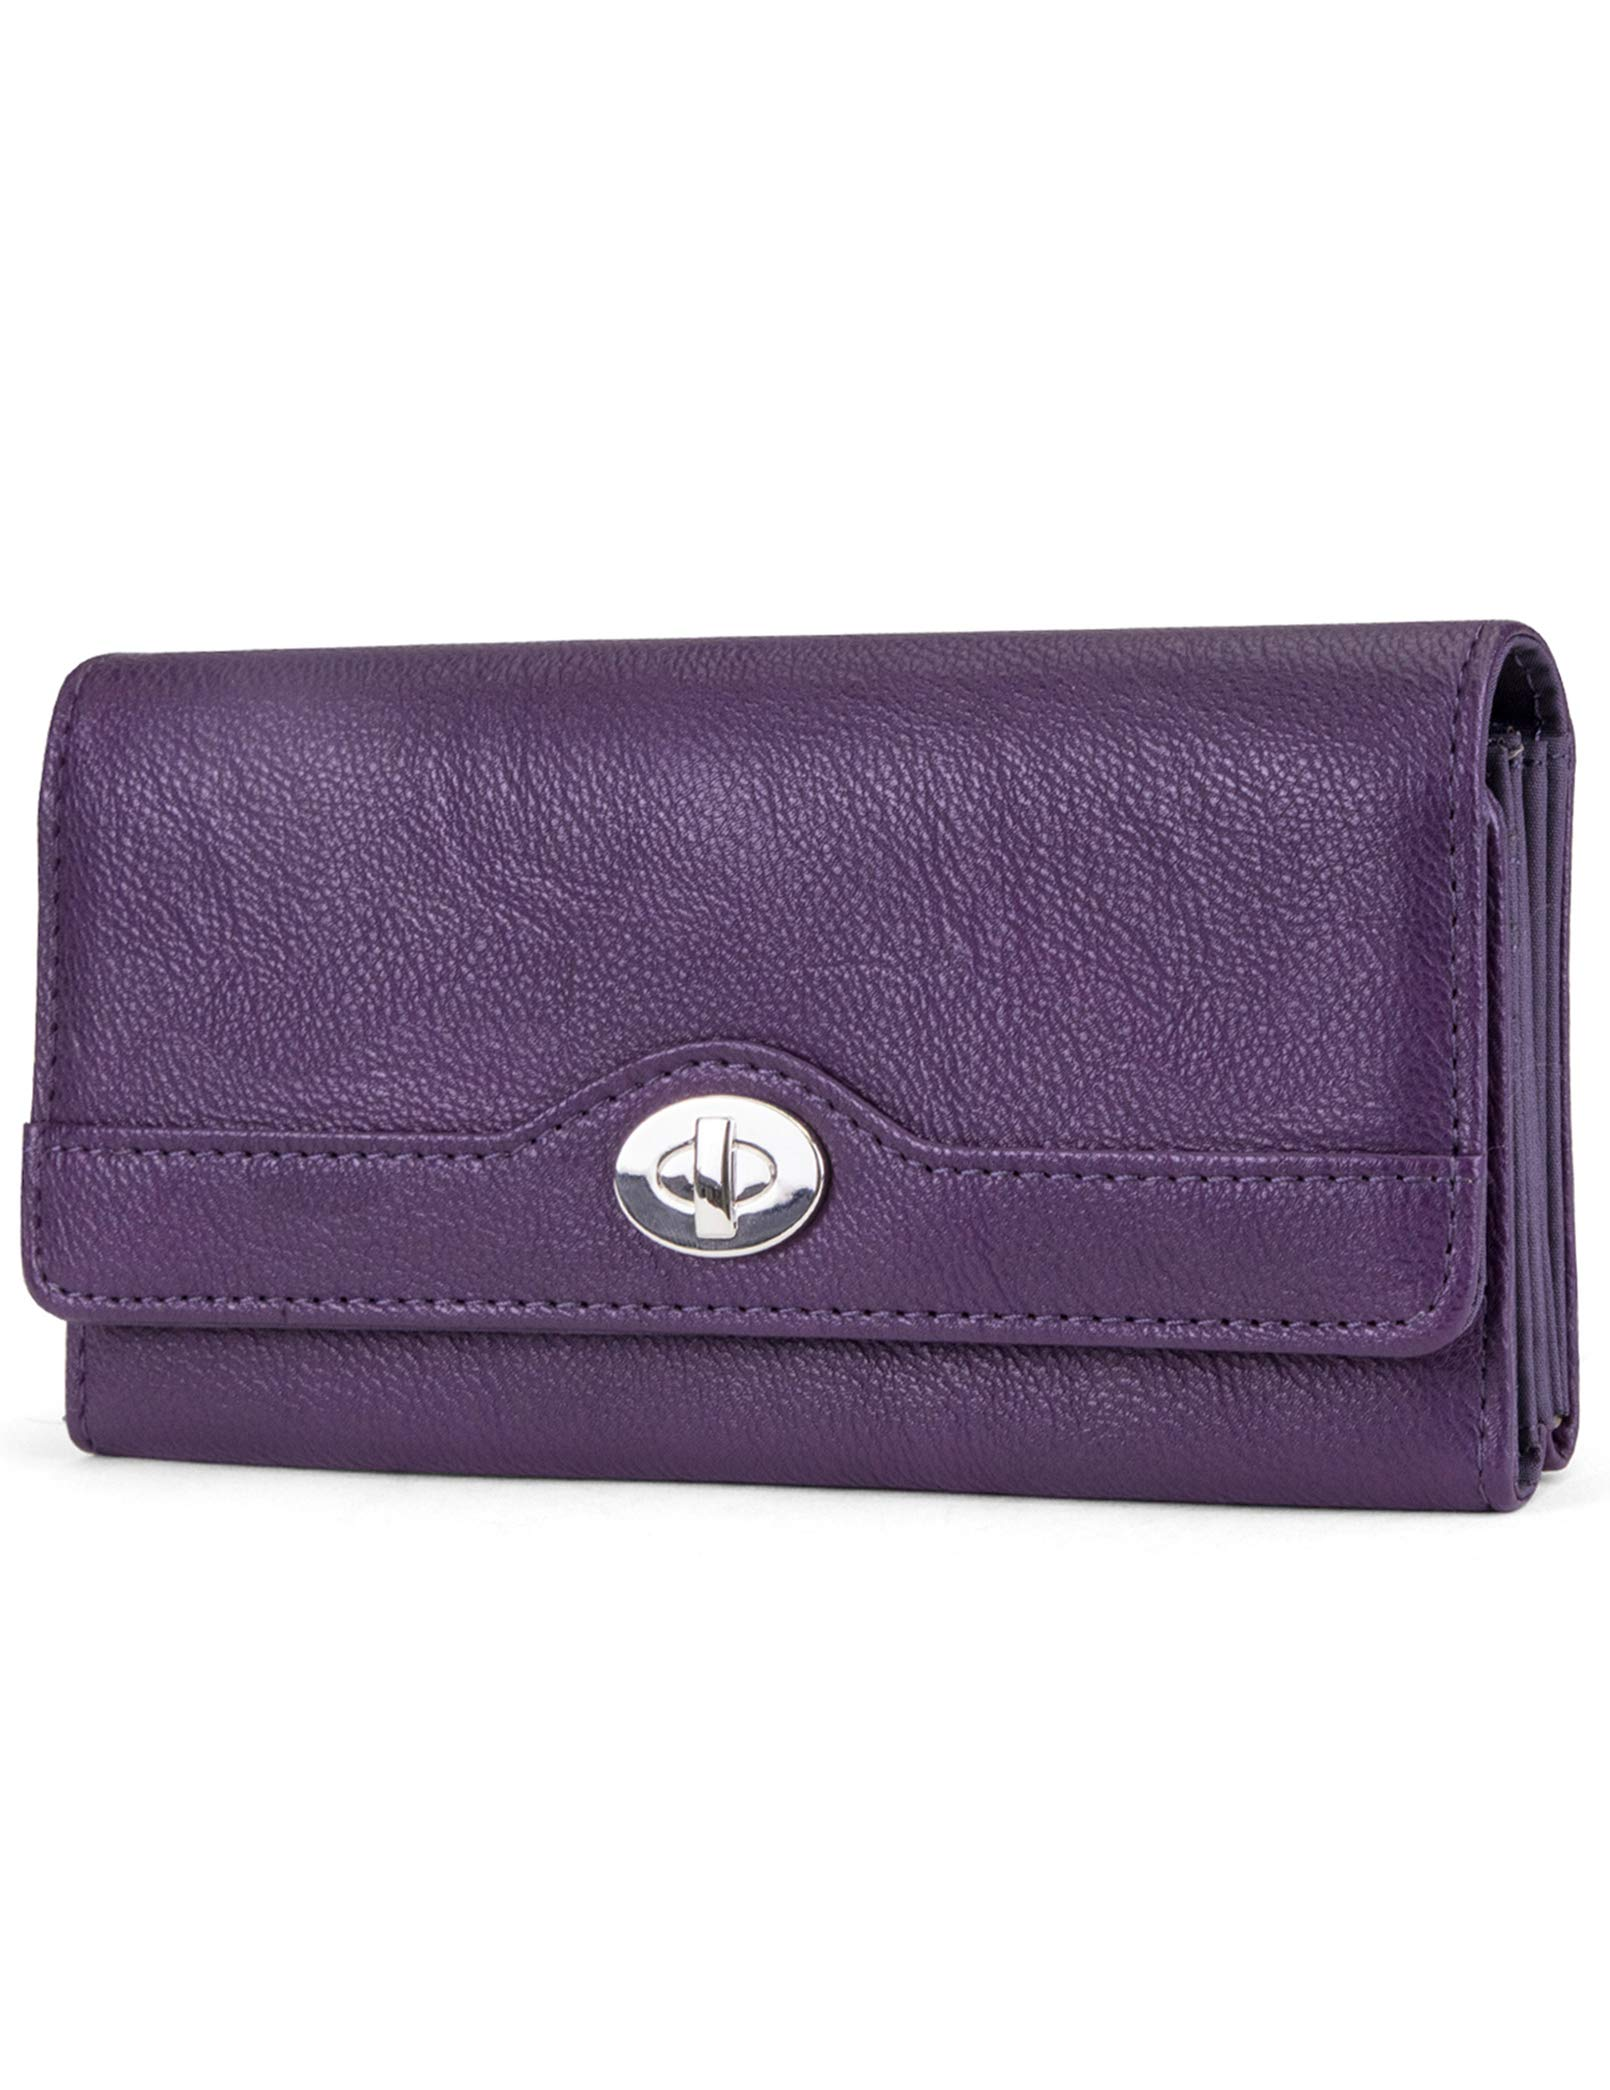 Mundi File Master Womens RFID Blocking Wallet Clutch Organizer With Change Pocket (One Size, (Purple))